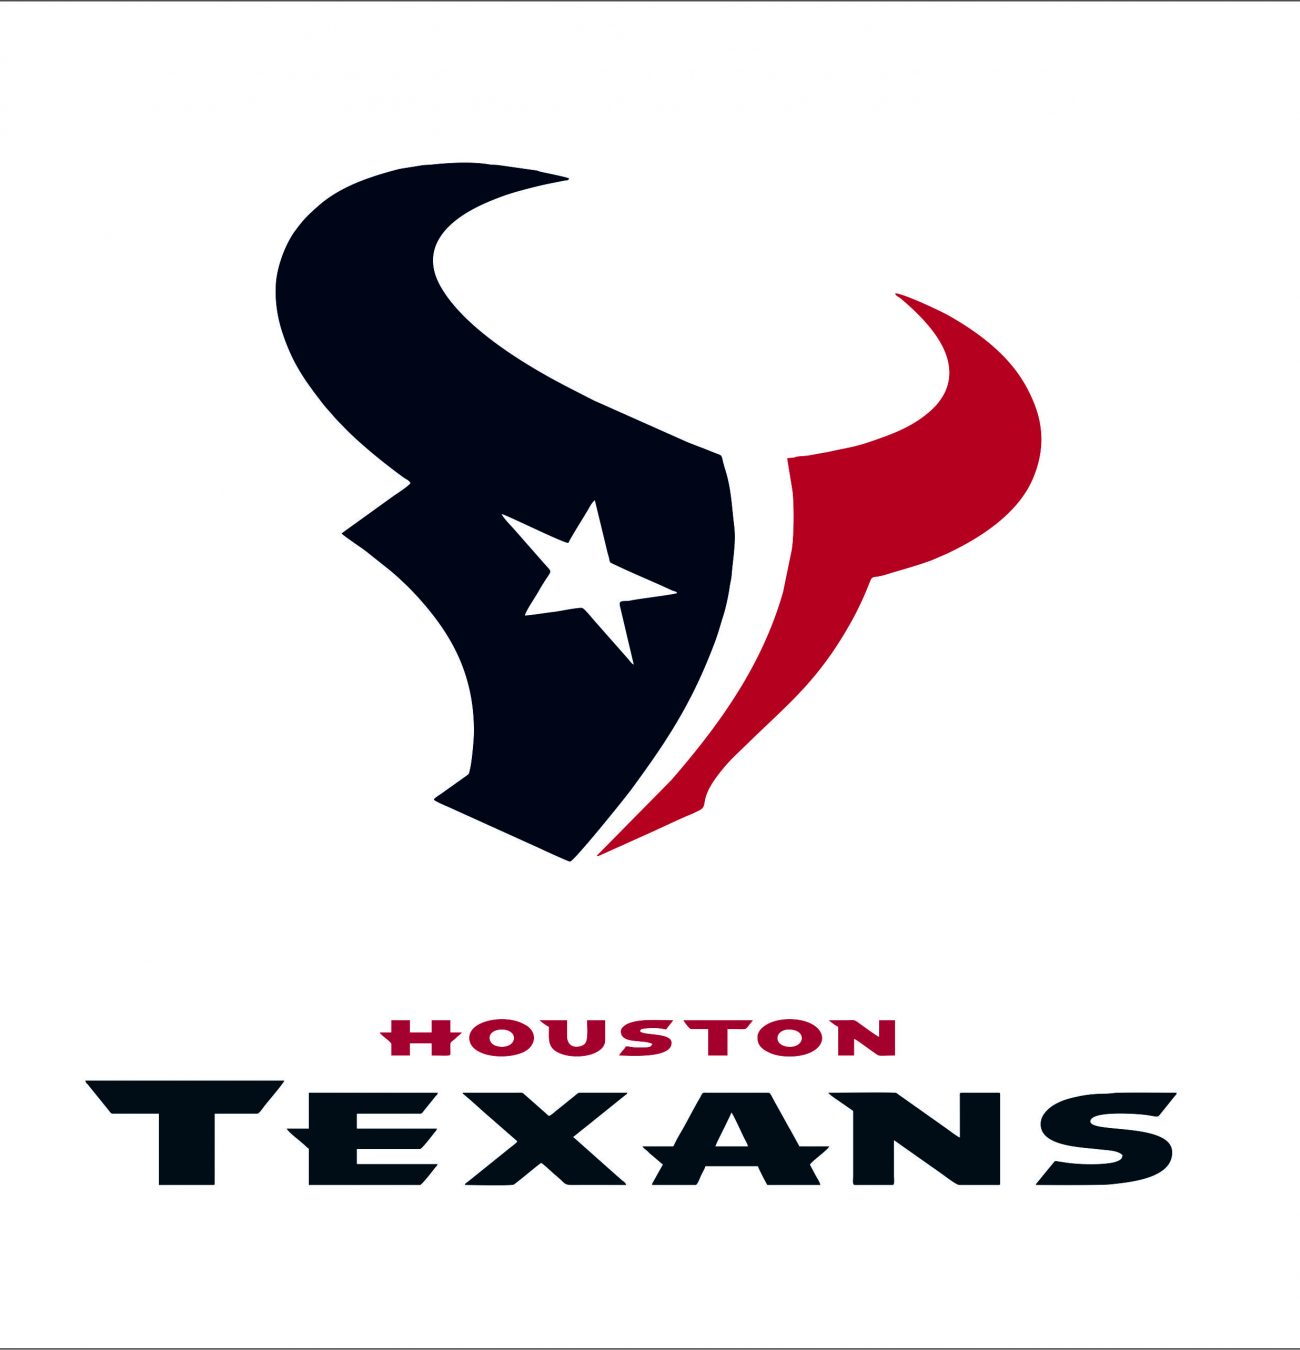 Houston Texans1